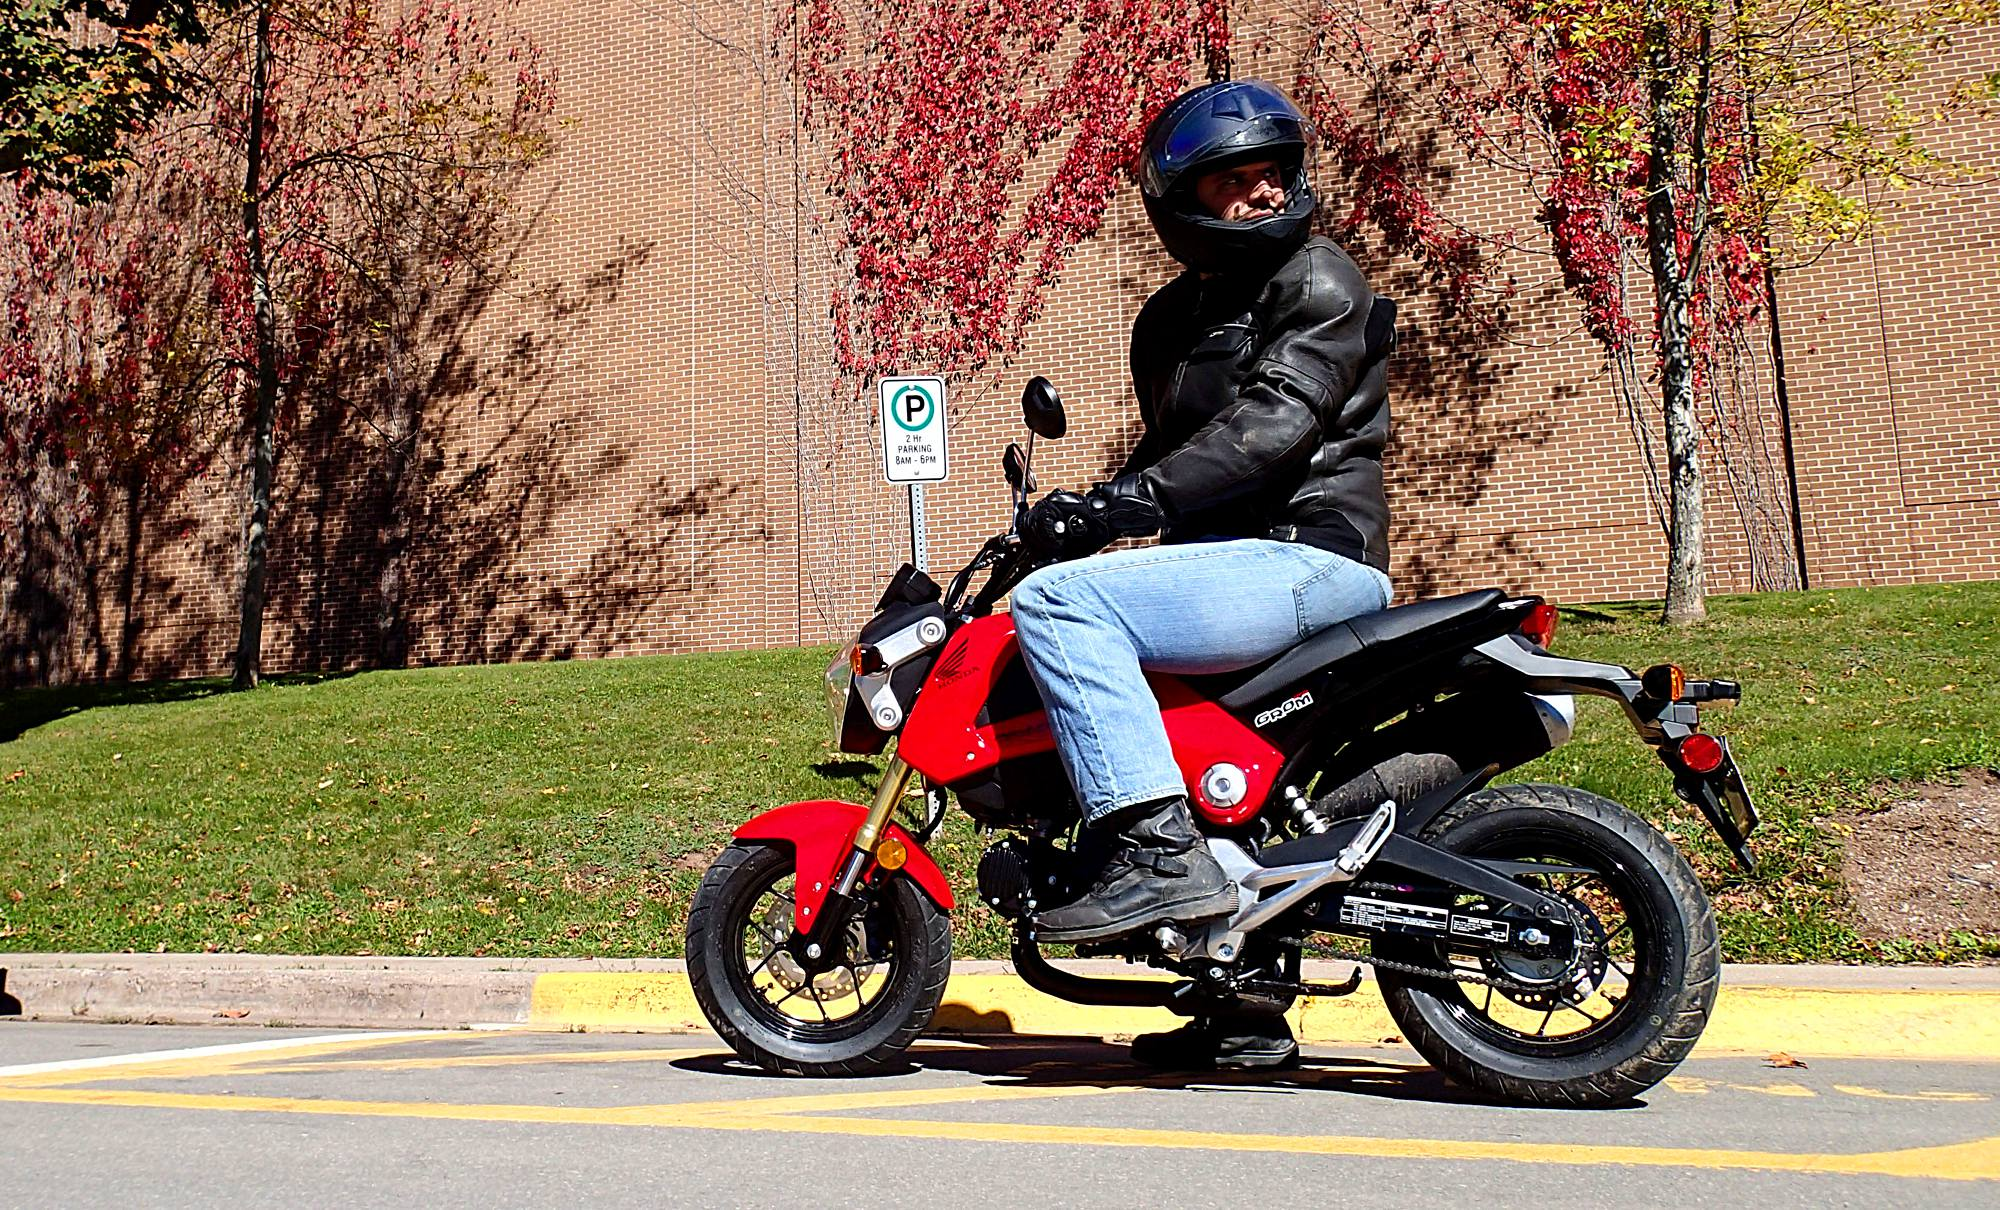 honda grom: world's smallest hooligan bike | canada moto guide